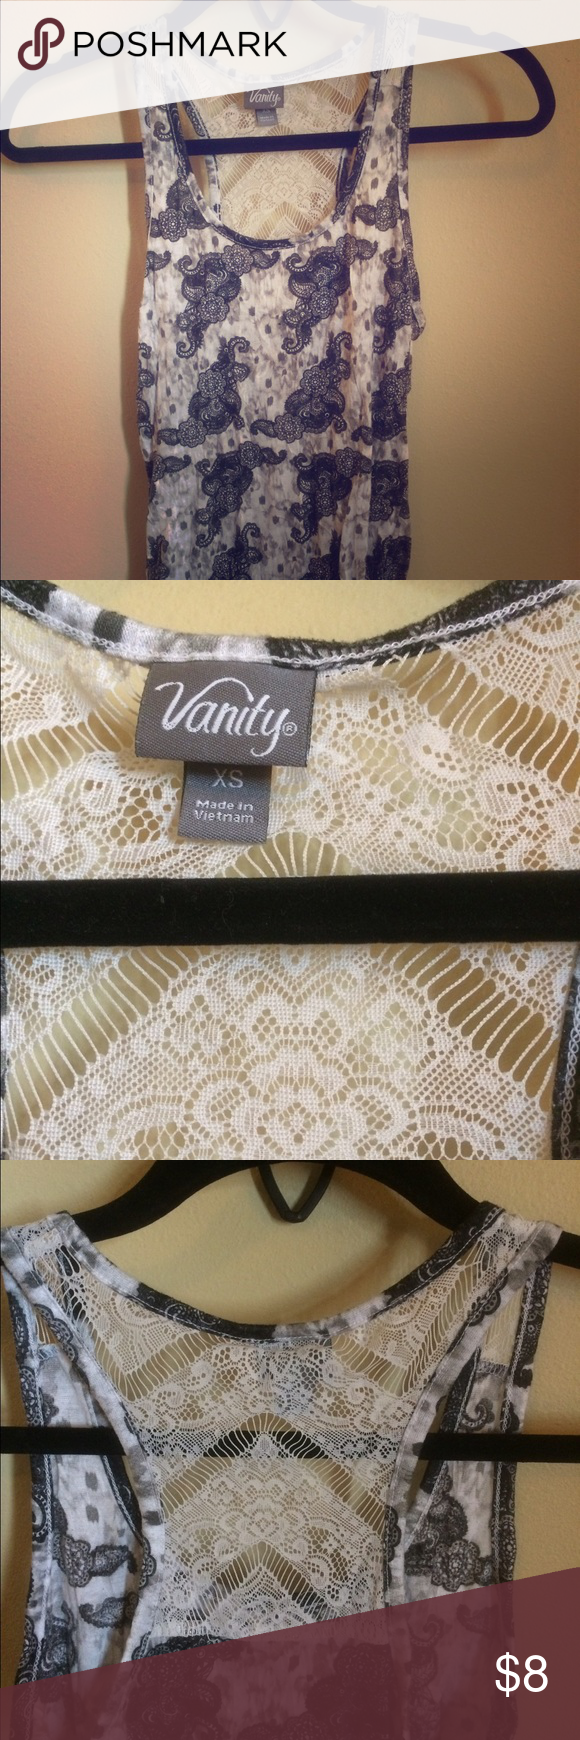 Vanity knit tank top Grey and white patterned knit tank top. Size: Small  No damage to knitting on shirt. No stains. Vanity Tops Tank Tops